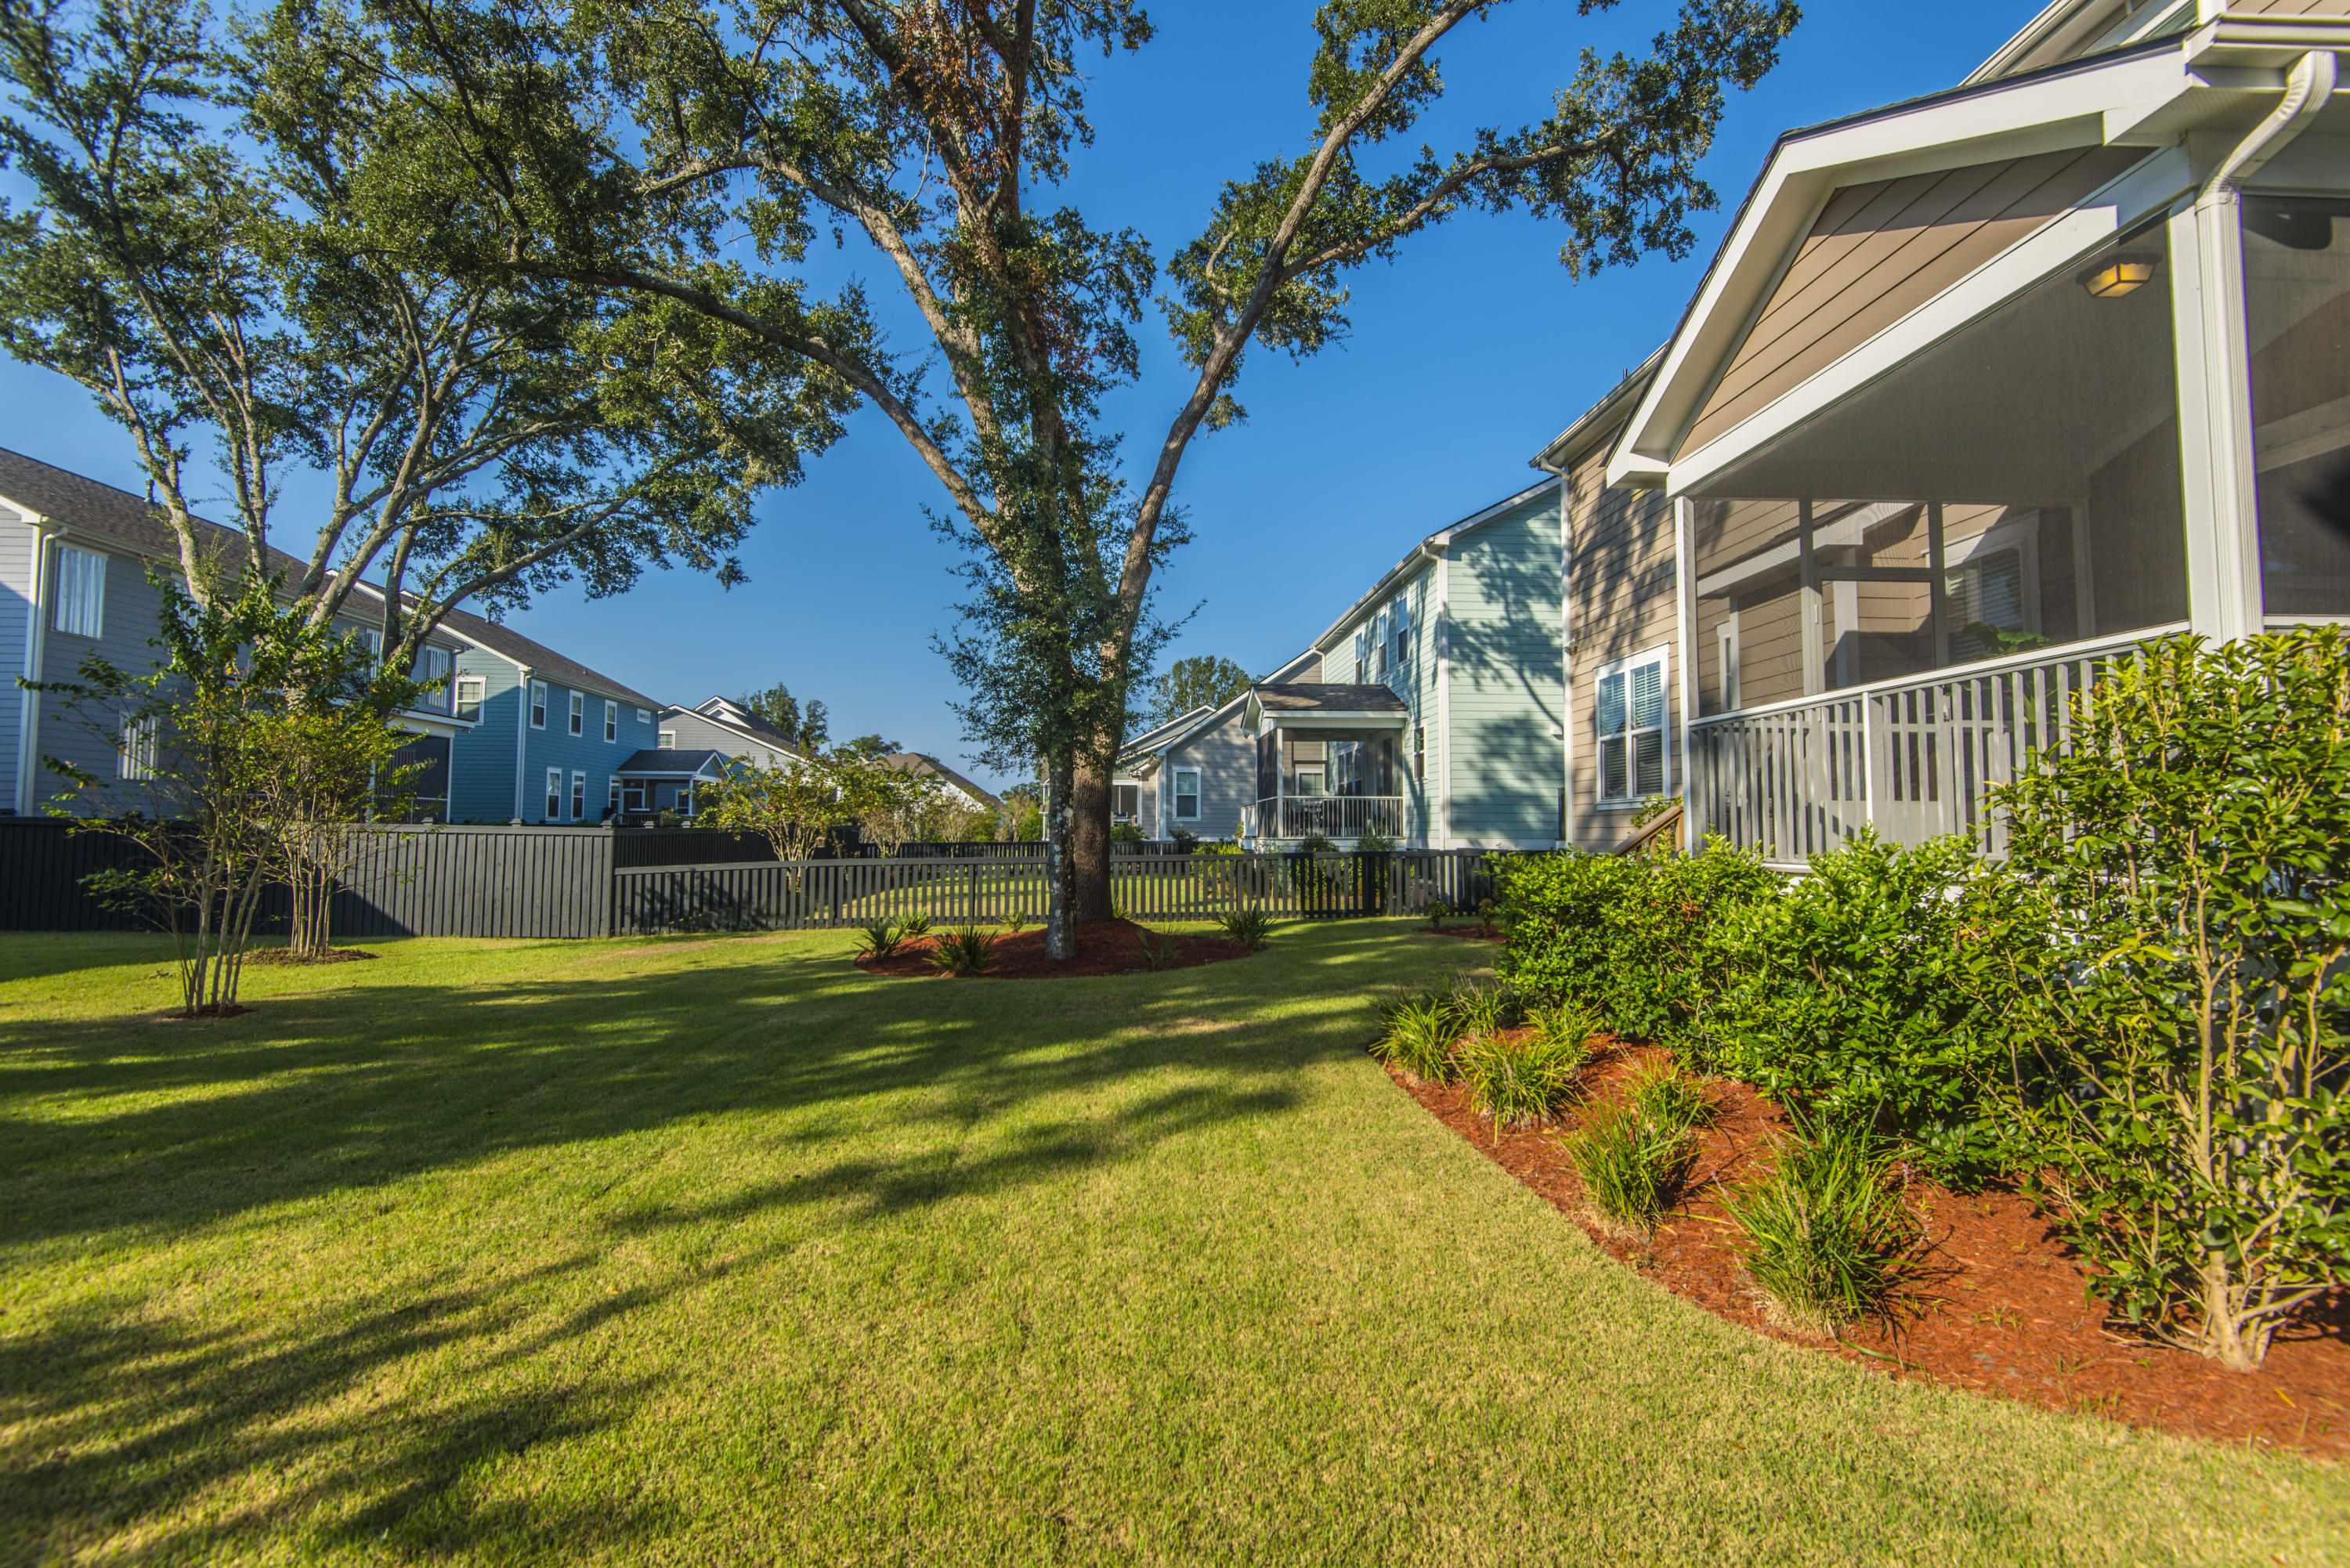 Oyster Point Homes For Sale - 2300 Skyler, Mount Pleasant, SC - 15